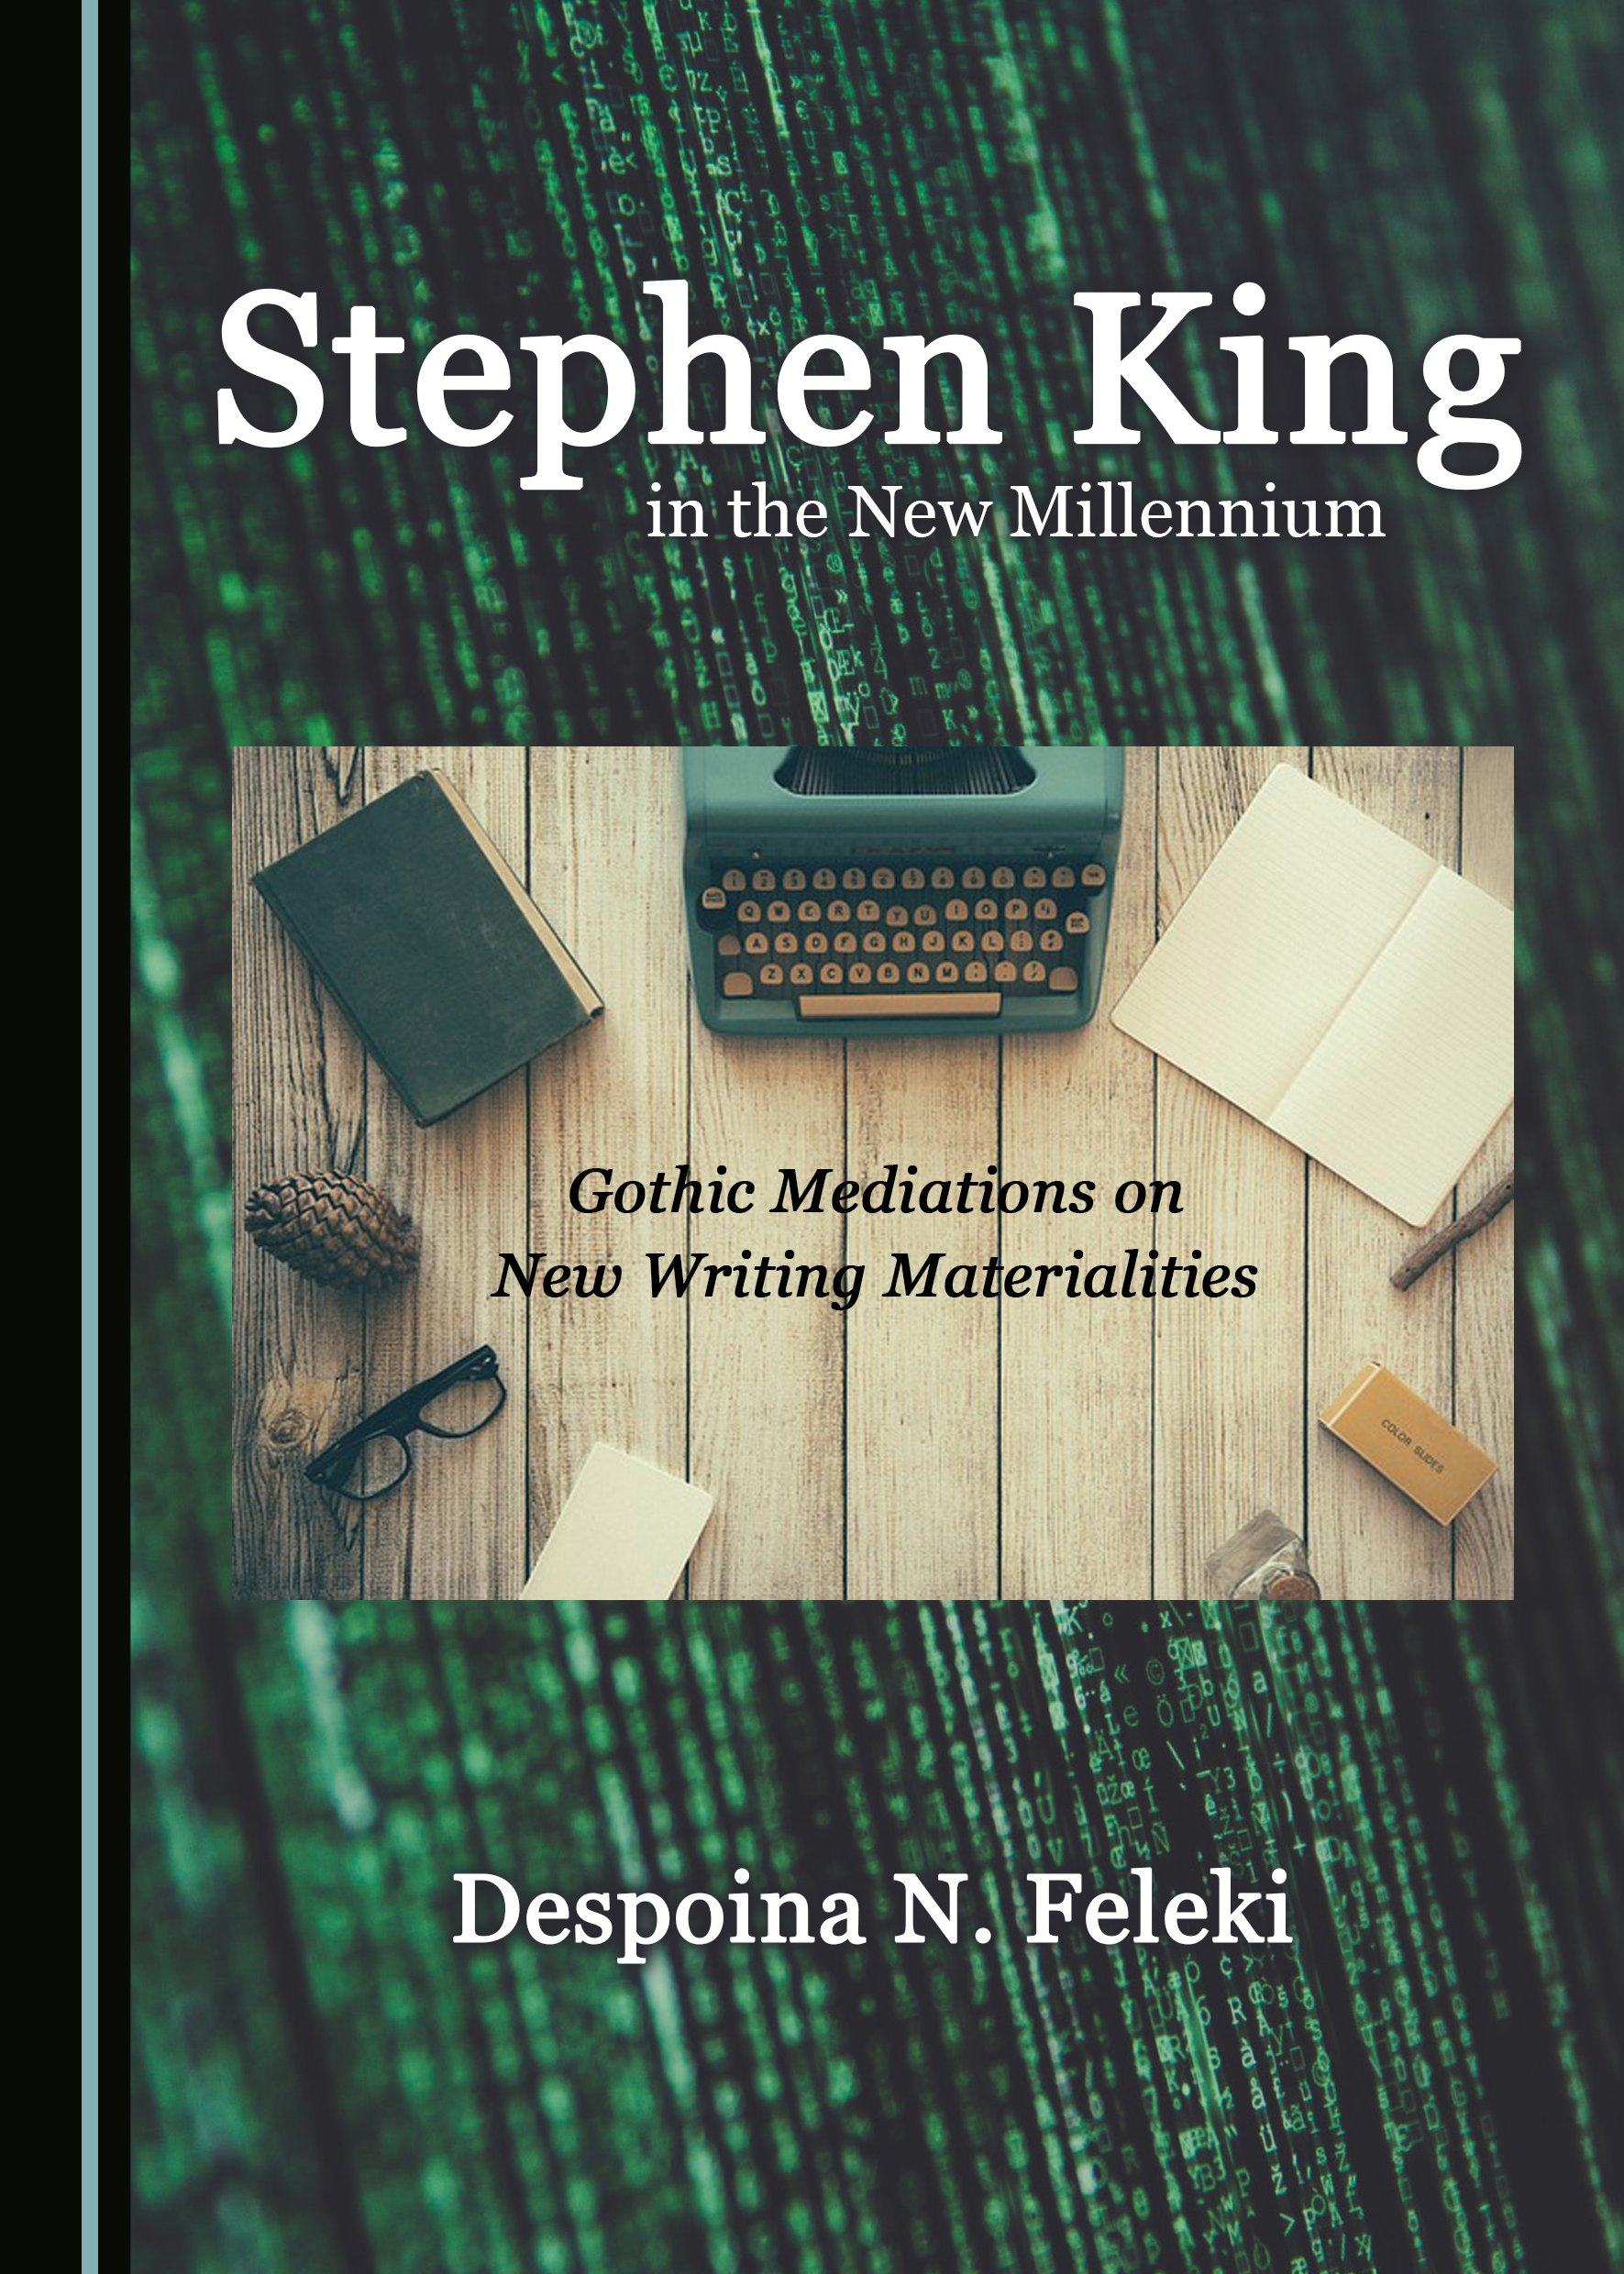 Stephen King in the New Millennium: Gothic Mediations on New Writing Materialities